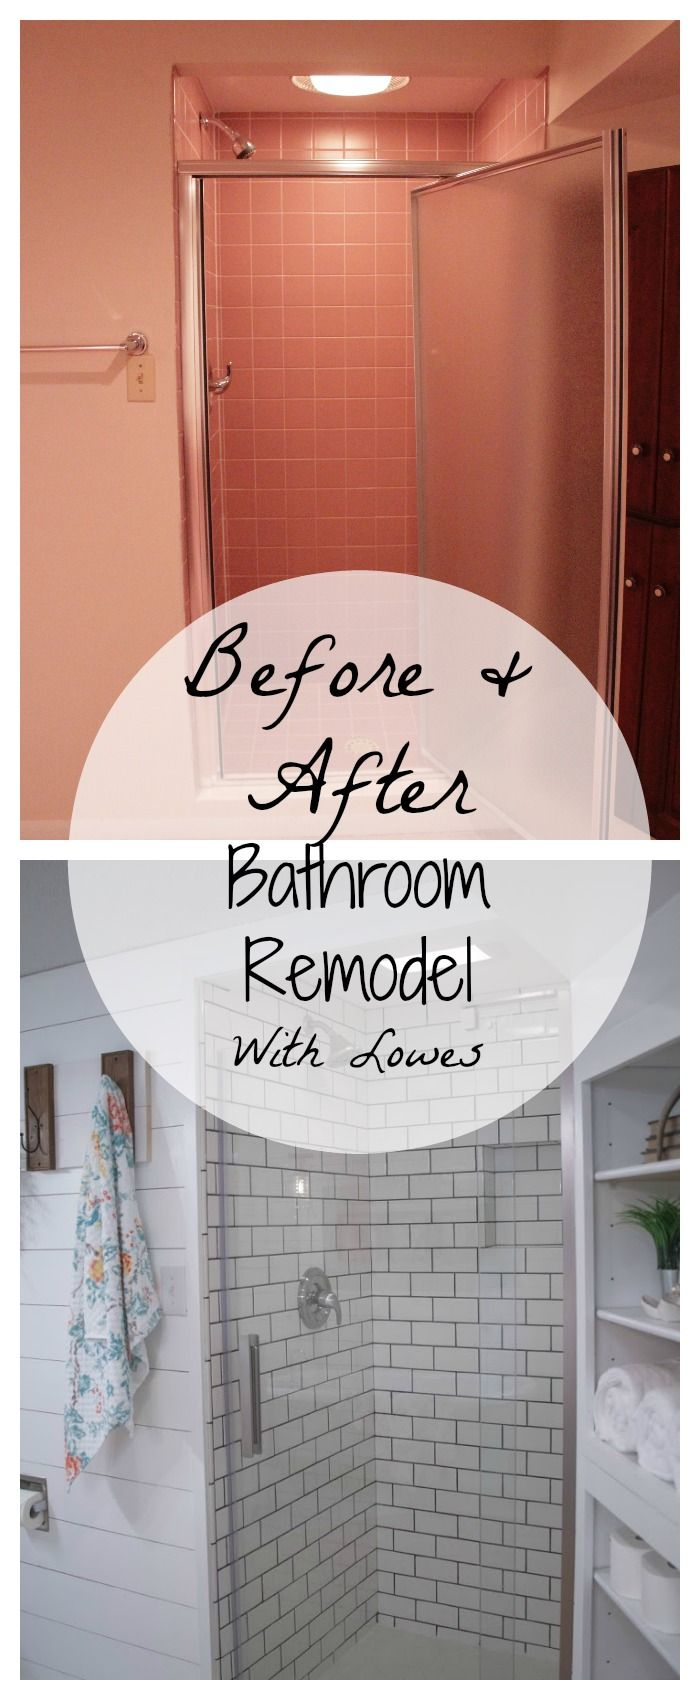 Before and After Bathroom Remodel With Lowes images